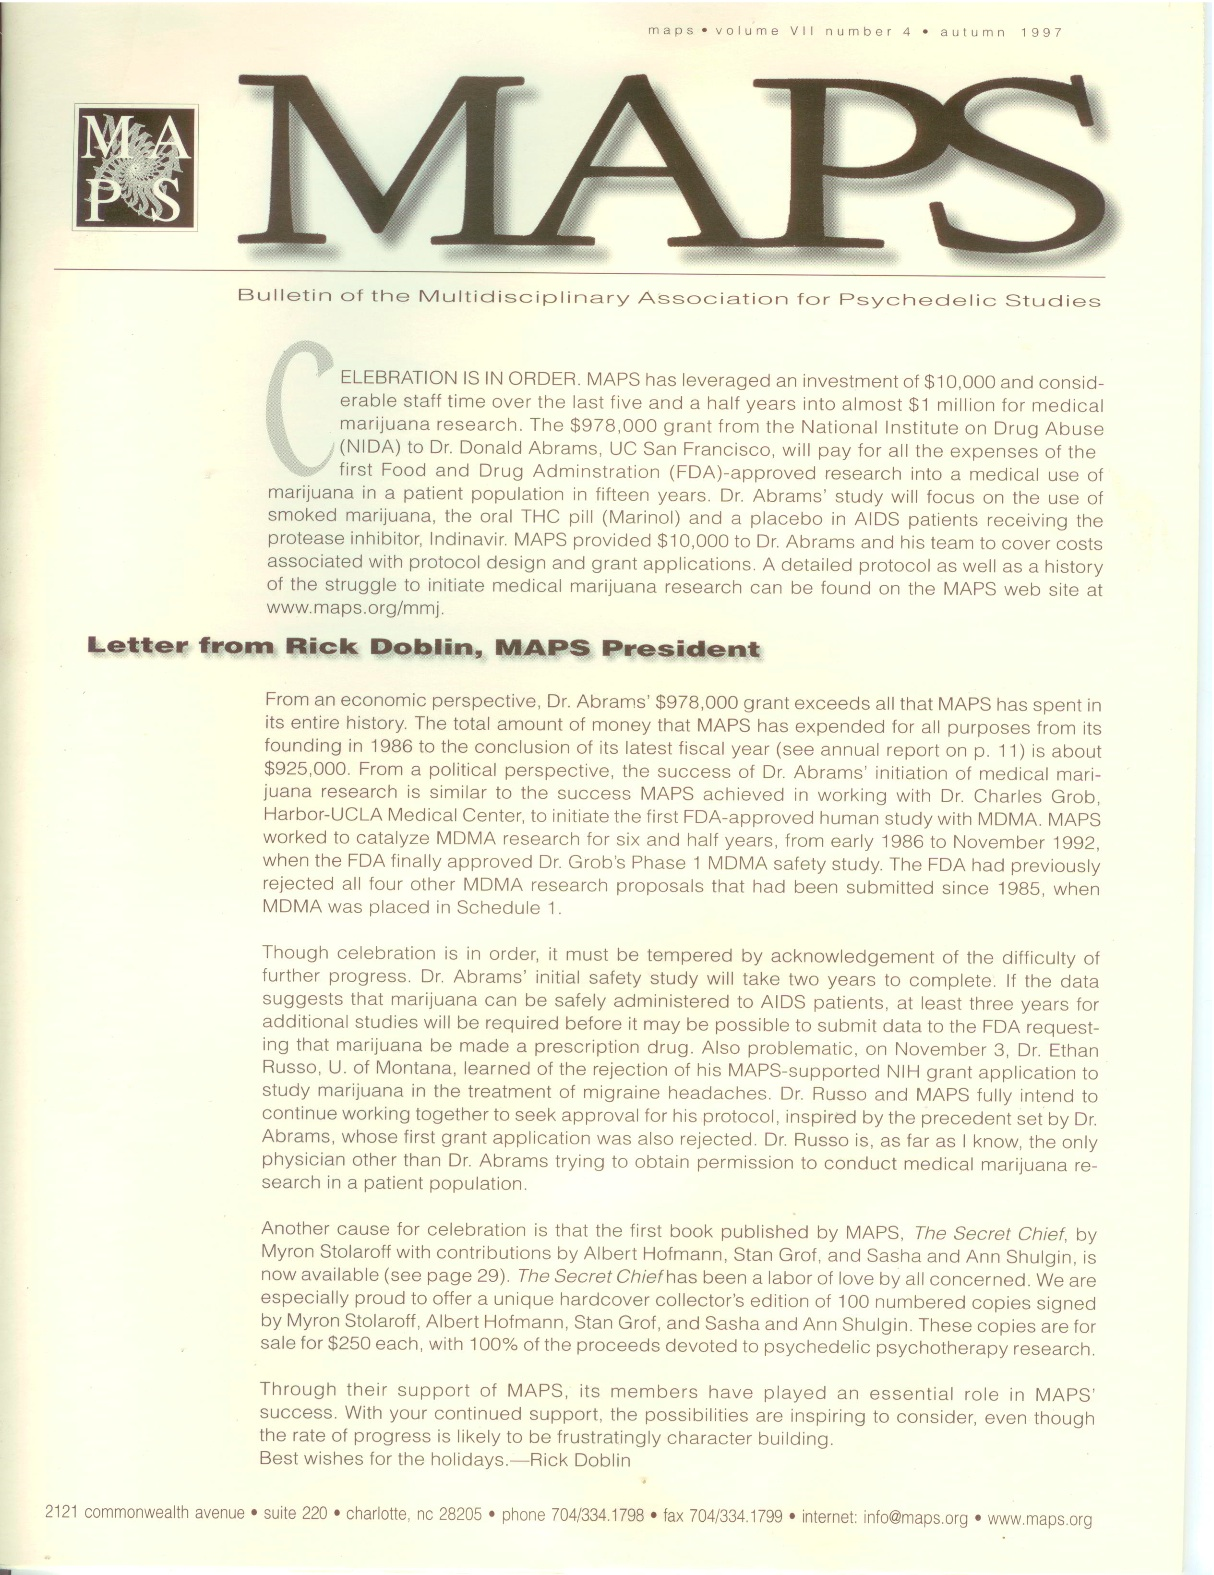 MAPS Bulletin Vol viii No 4: Autumn 1997 - Front Cover Image - Psychedelic Art -  by